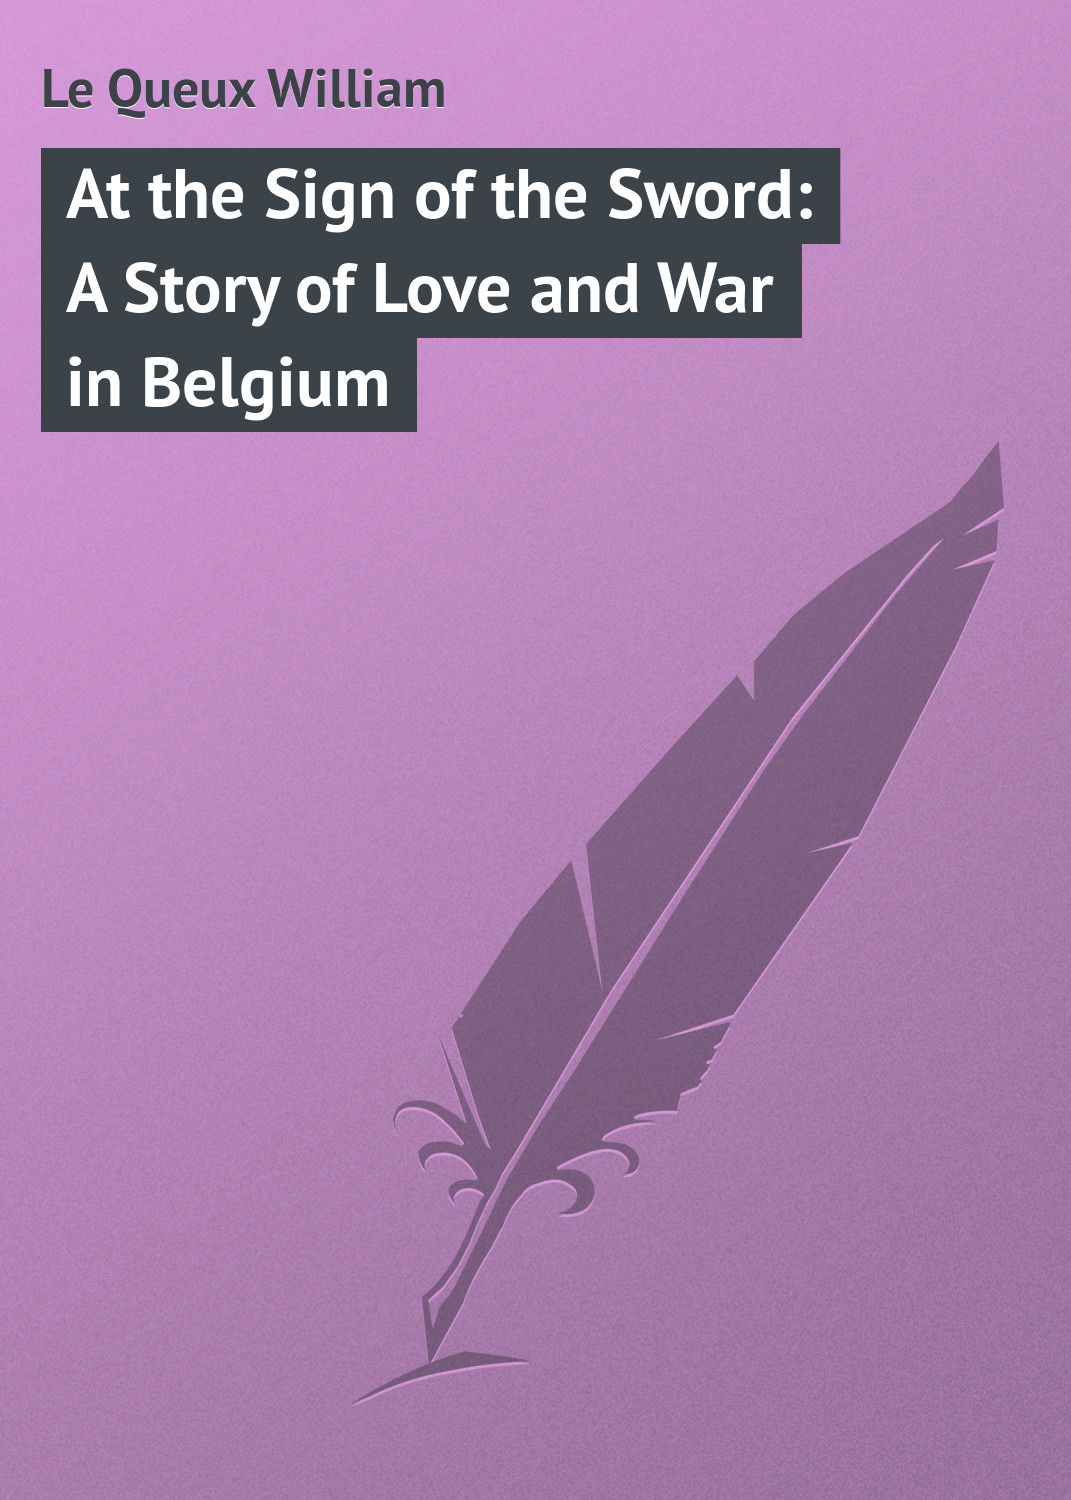 Le Queux William At the Sign of the Sword: A Story of Love and War in Belgium goodwin harold leland the wailing octopus a rick brant science adventure story